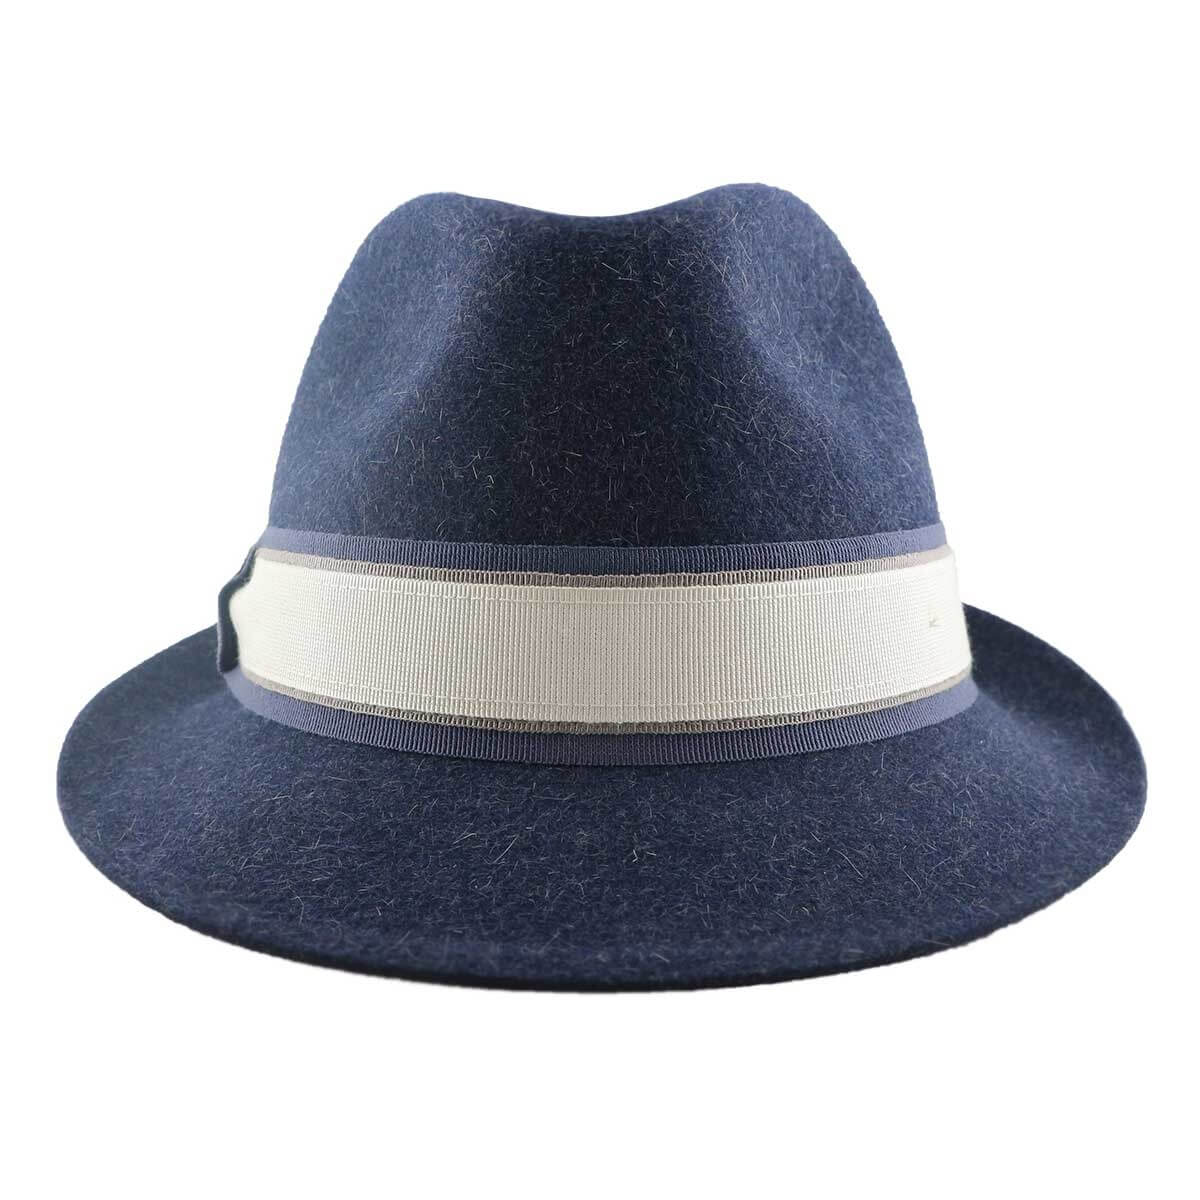 Exclusive Henly Fur Felt Trilby Hat - Blue Mix-Blue Mix-s